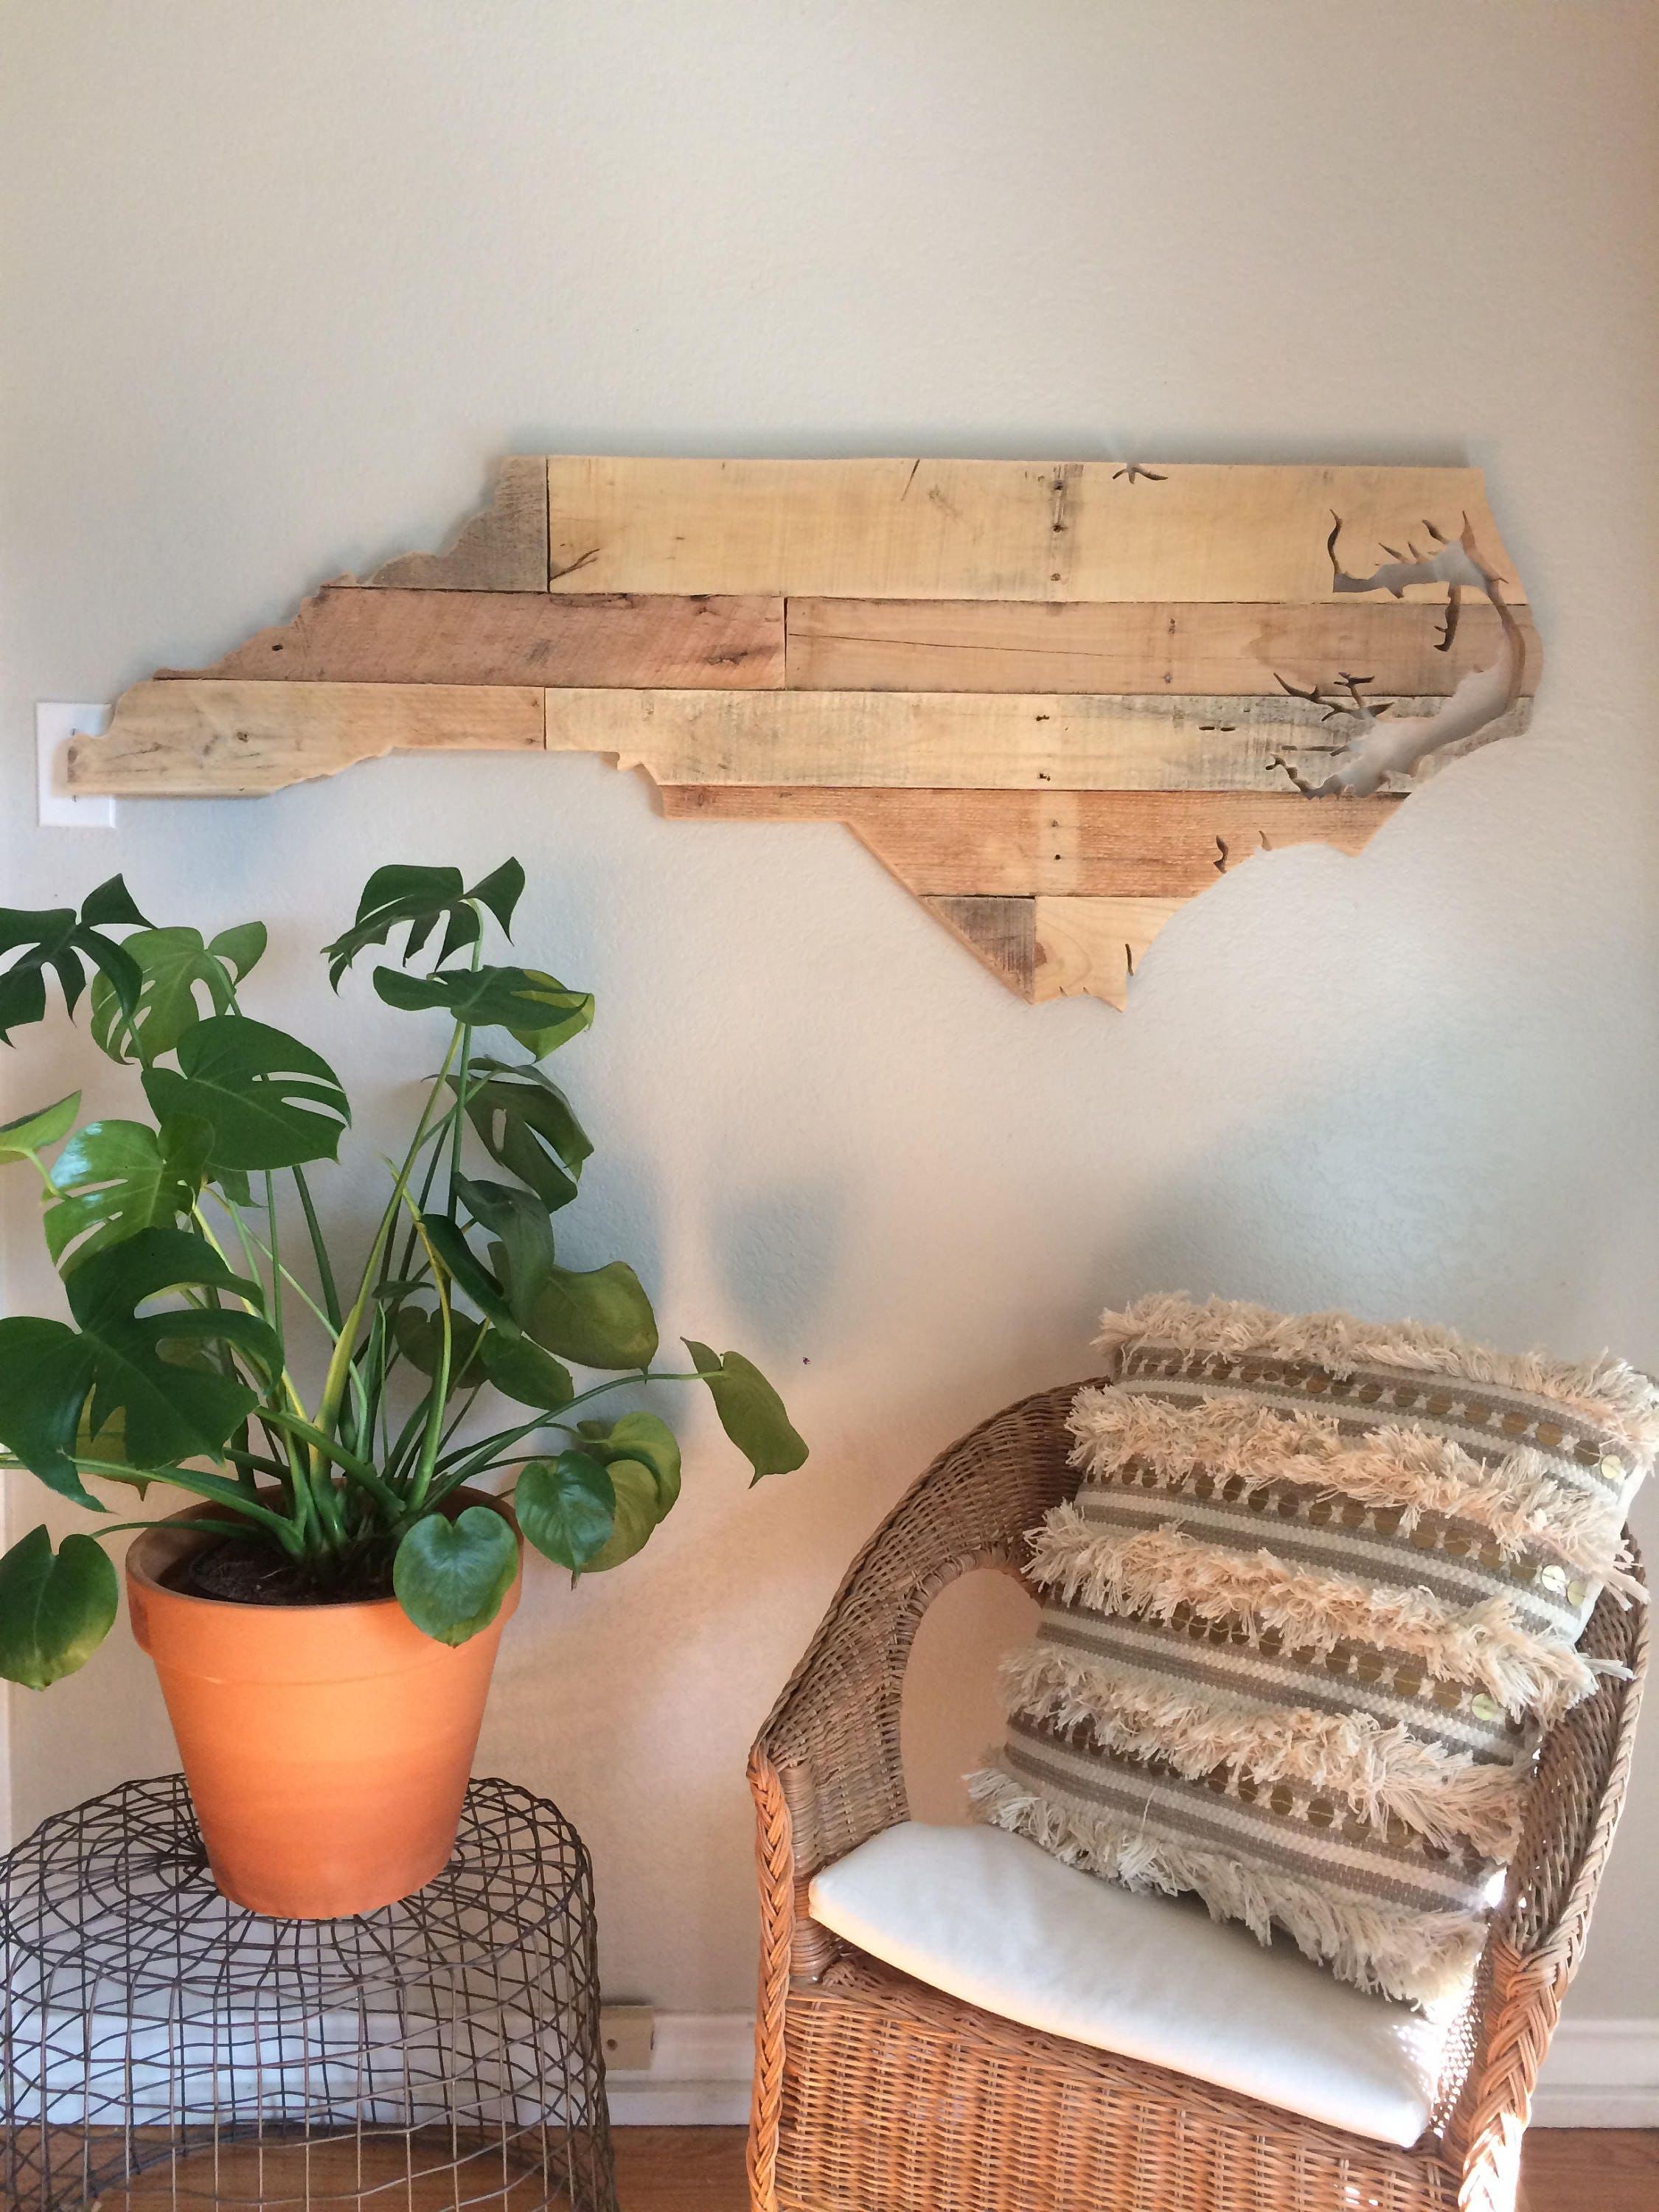 North Carolina State Sign Reclaimed Wood Pallet Sign Decor